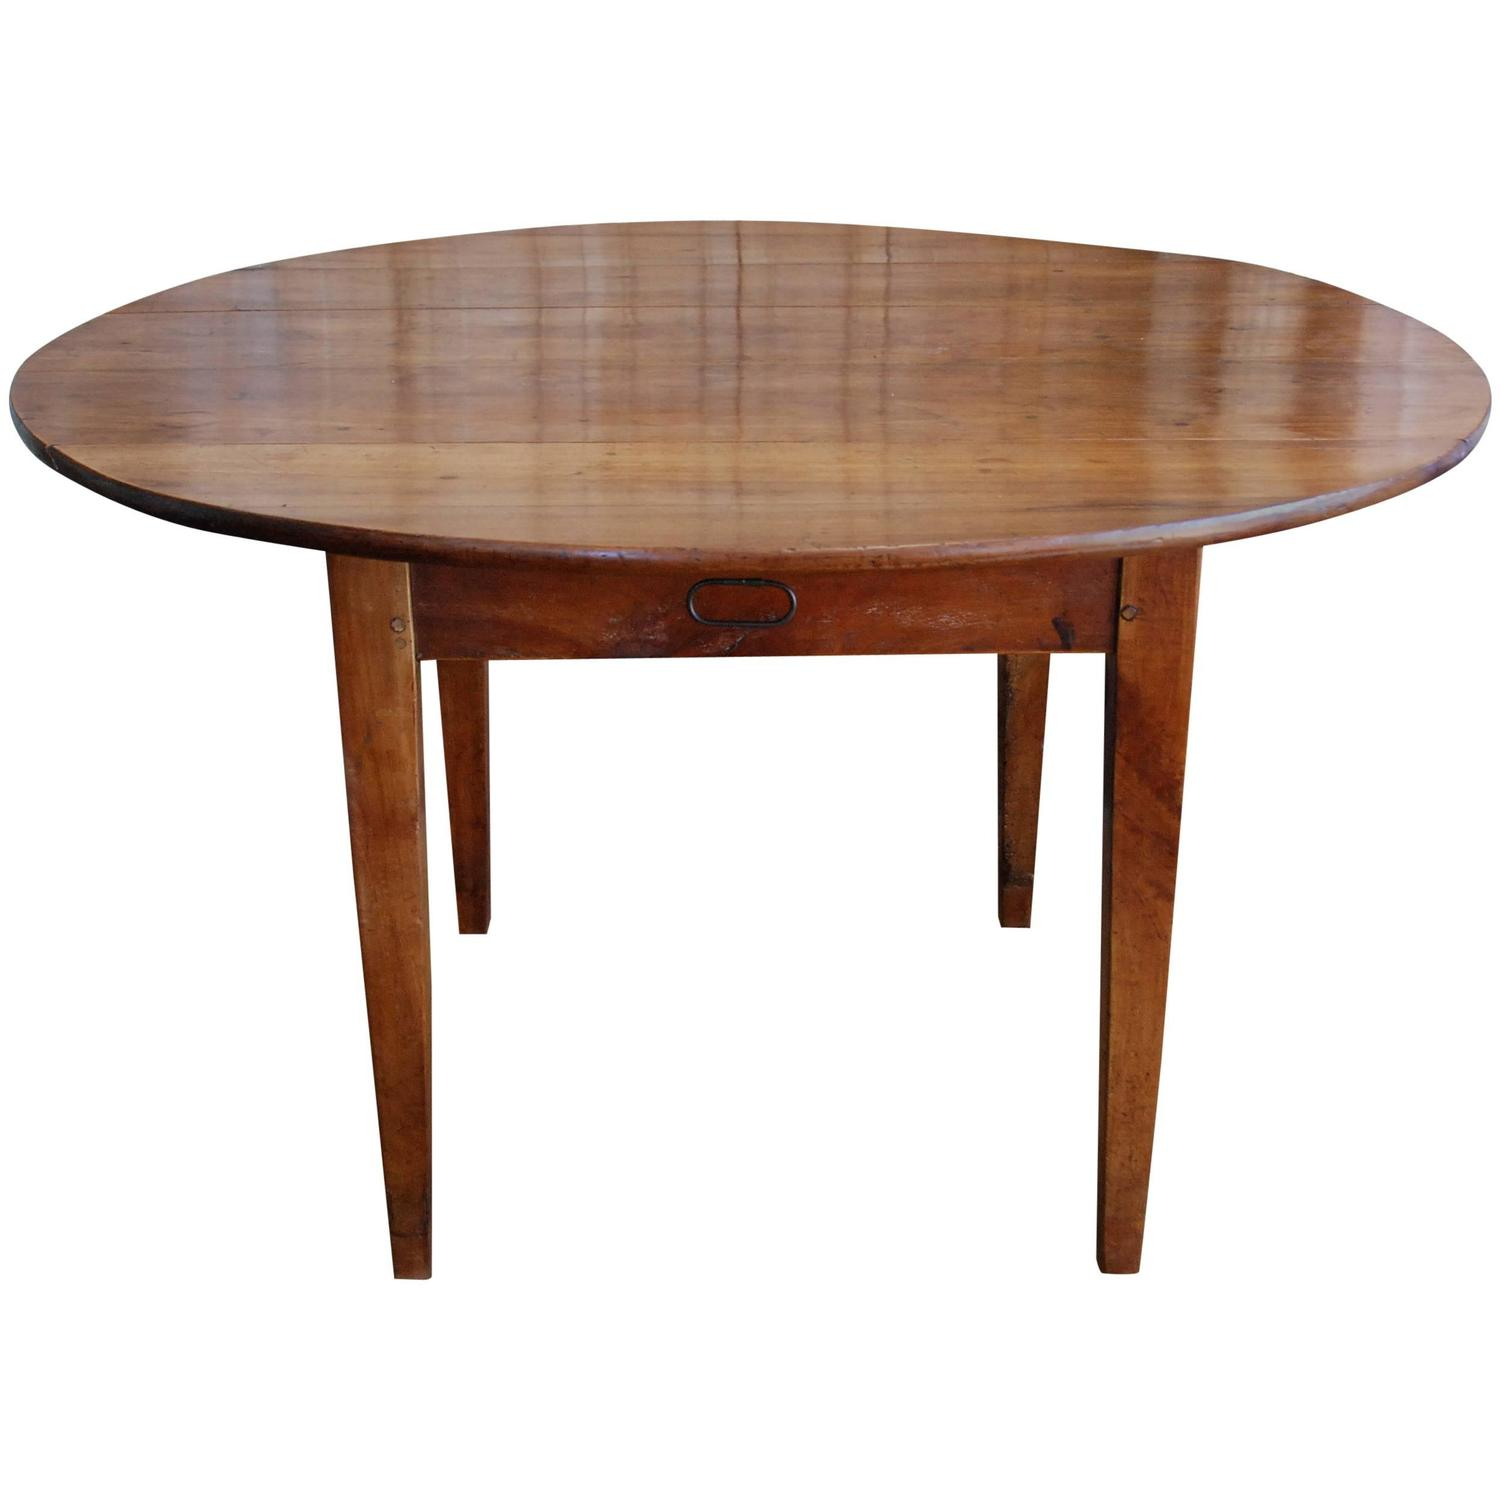 19th century french walnut round drop leaf table at 1stdibs for Round drop leaf dining table